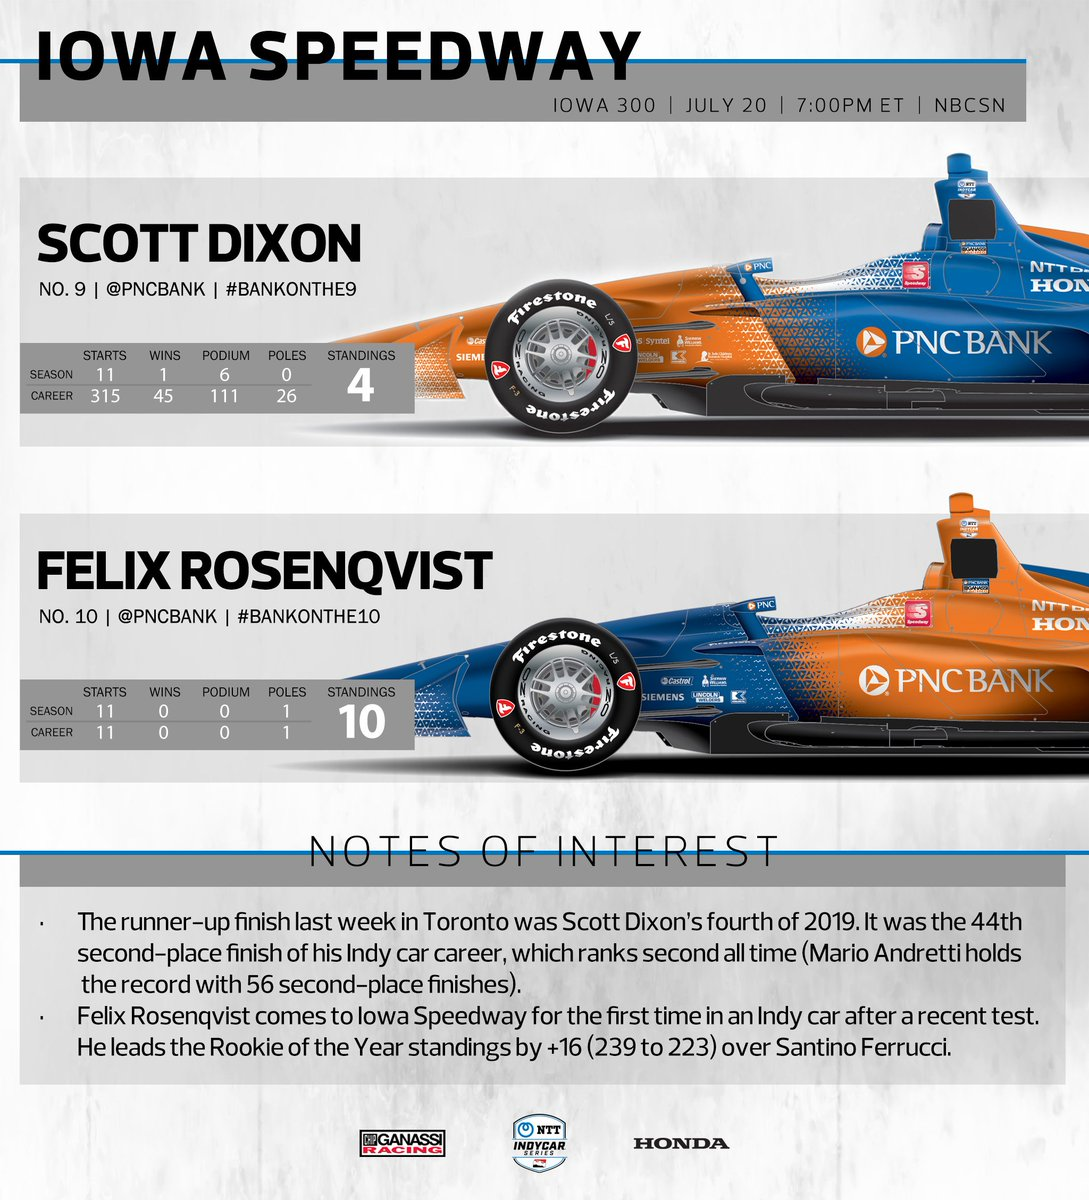 Its an all orange and blue weekend for @scottdixon9 and @FRosenqvist! #BankOnThe9 AND #BankOnThe10